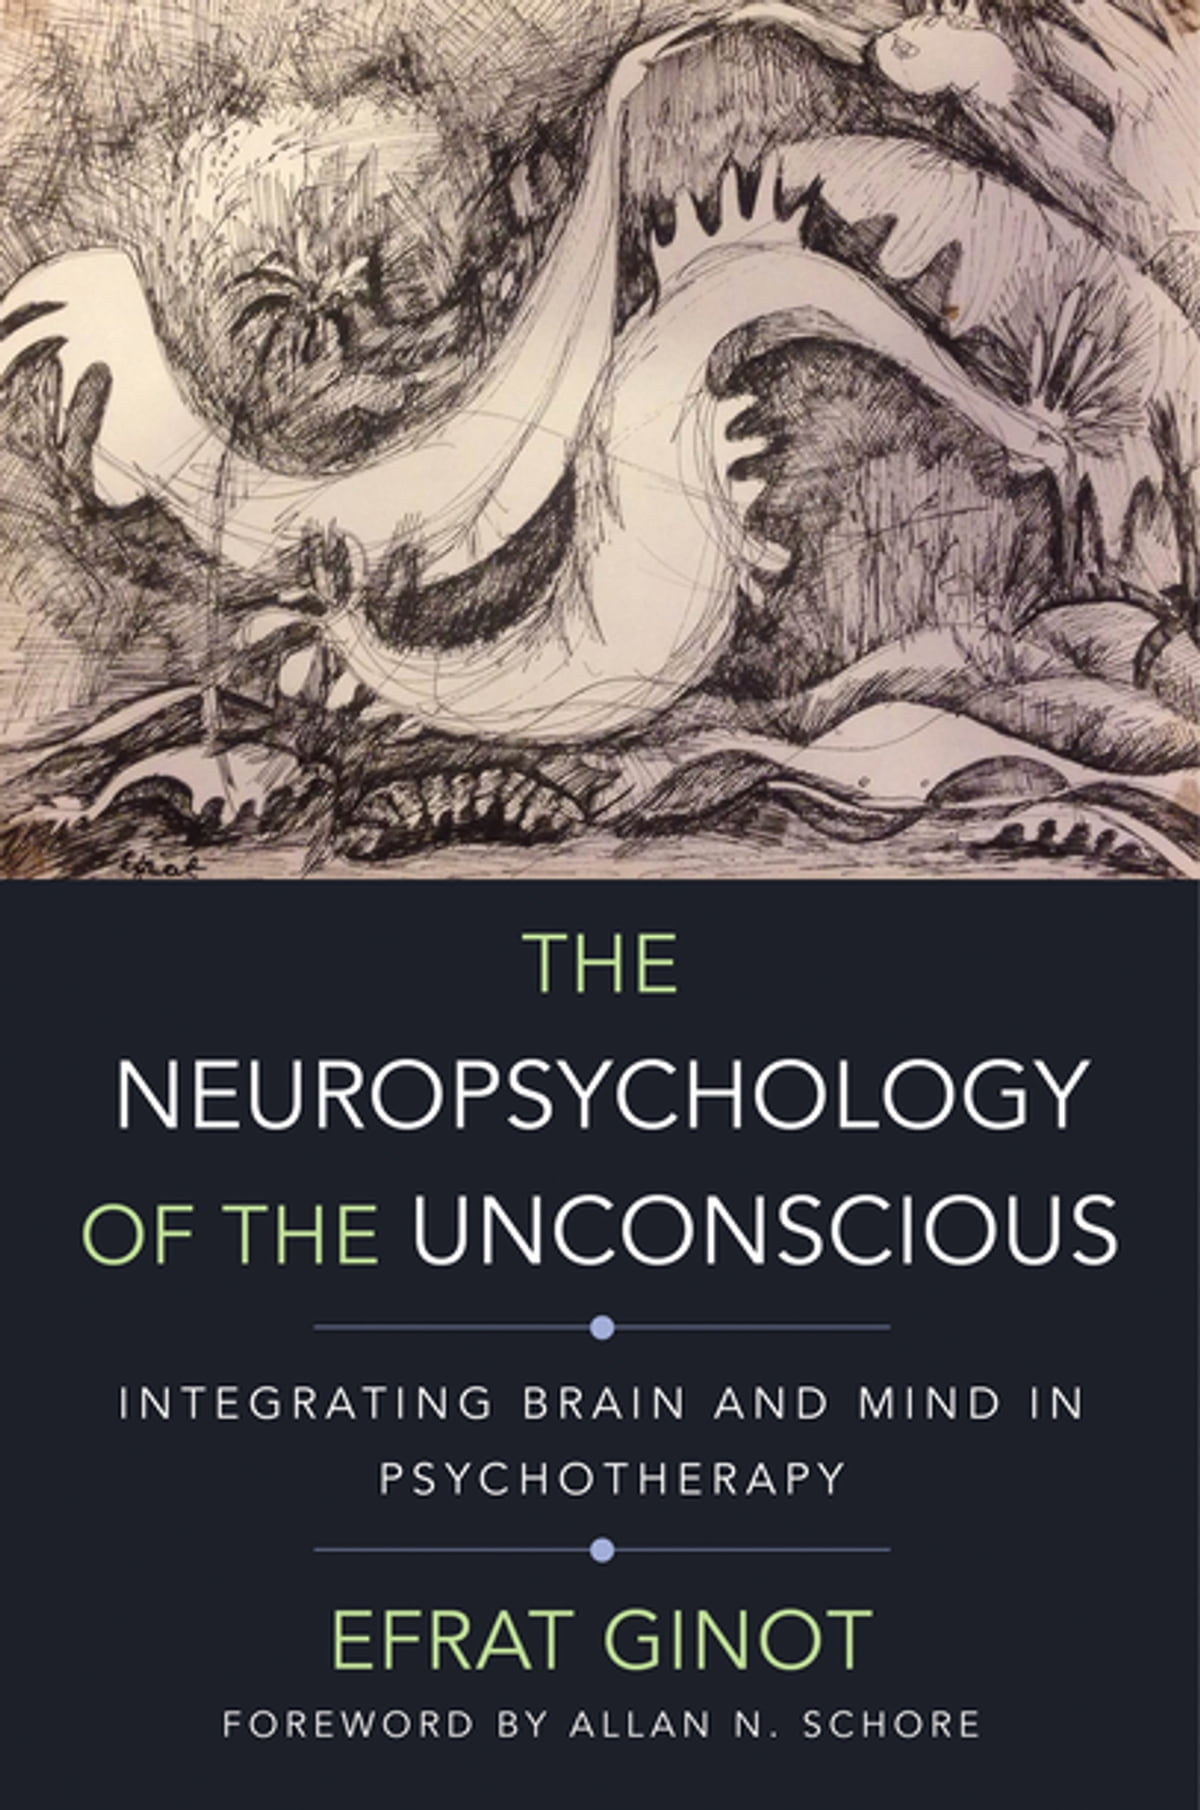 The Neuropsychology of the Unconscious: Integrating Brain and Mind in  Psychotherapy (Norton Series on Interpersonal Neurobiology) eBook by Efrat  Ginot ...